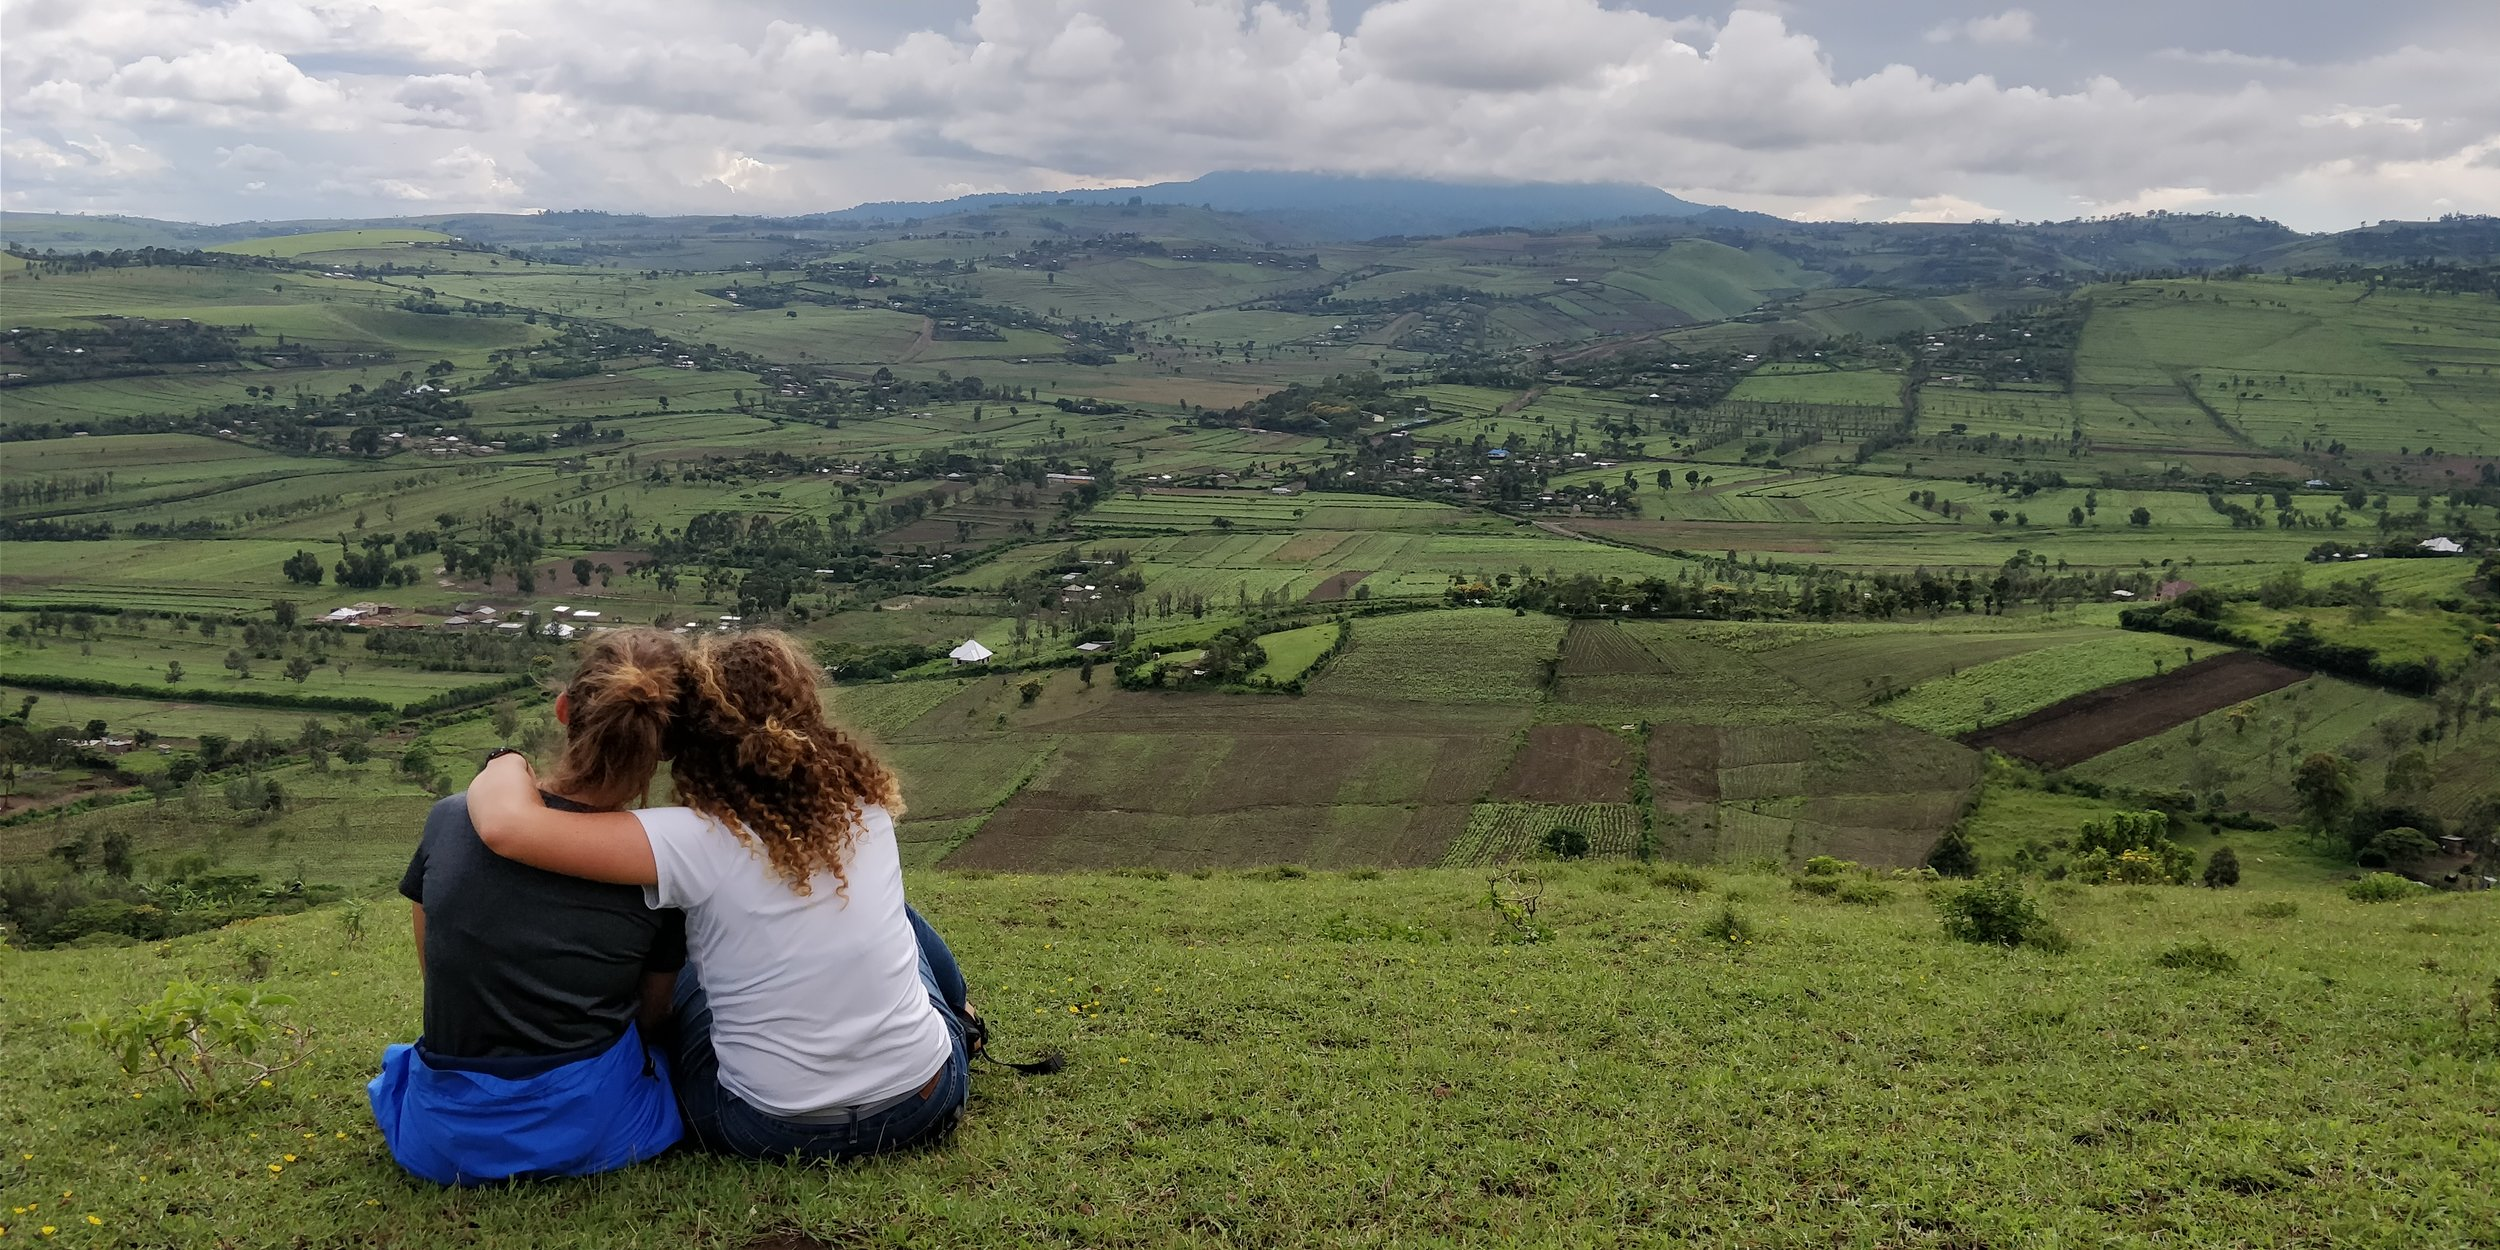 In 4 months - Elena and Savannah will arrive in Tanzania